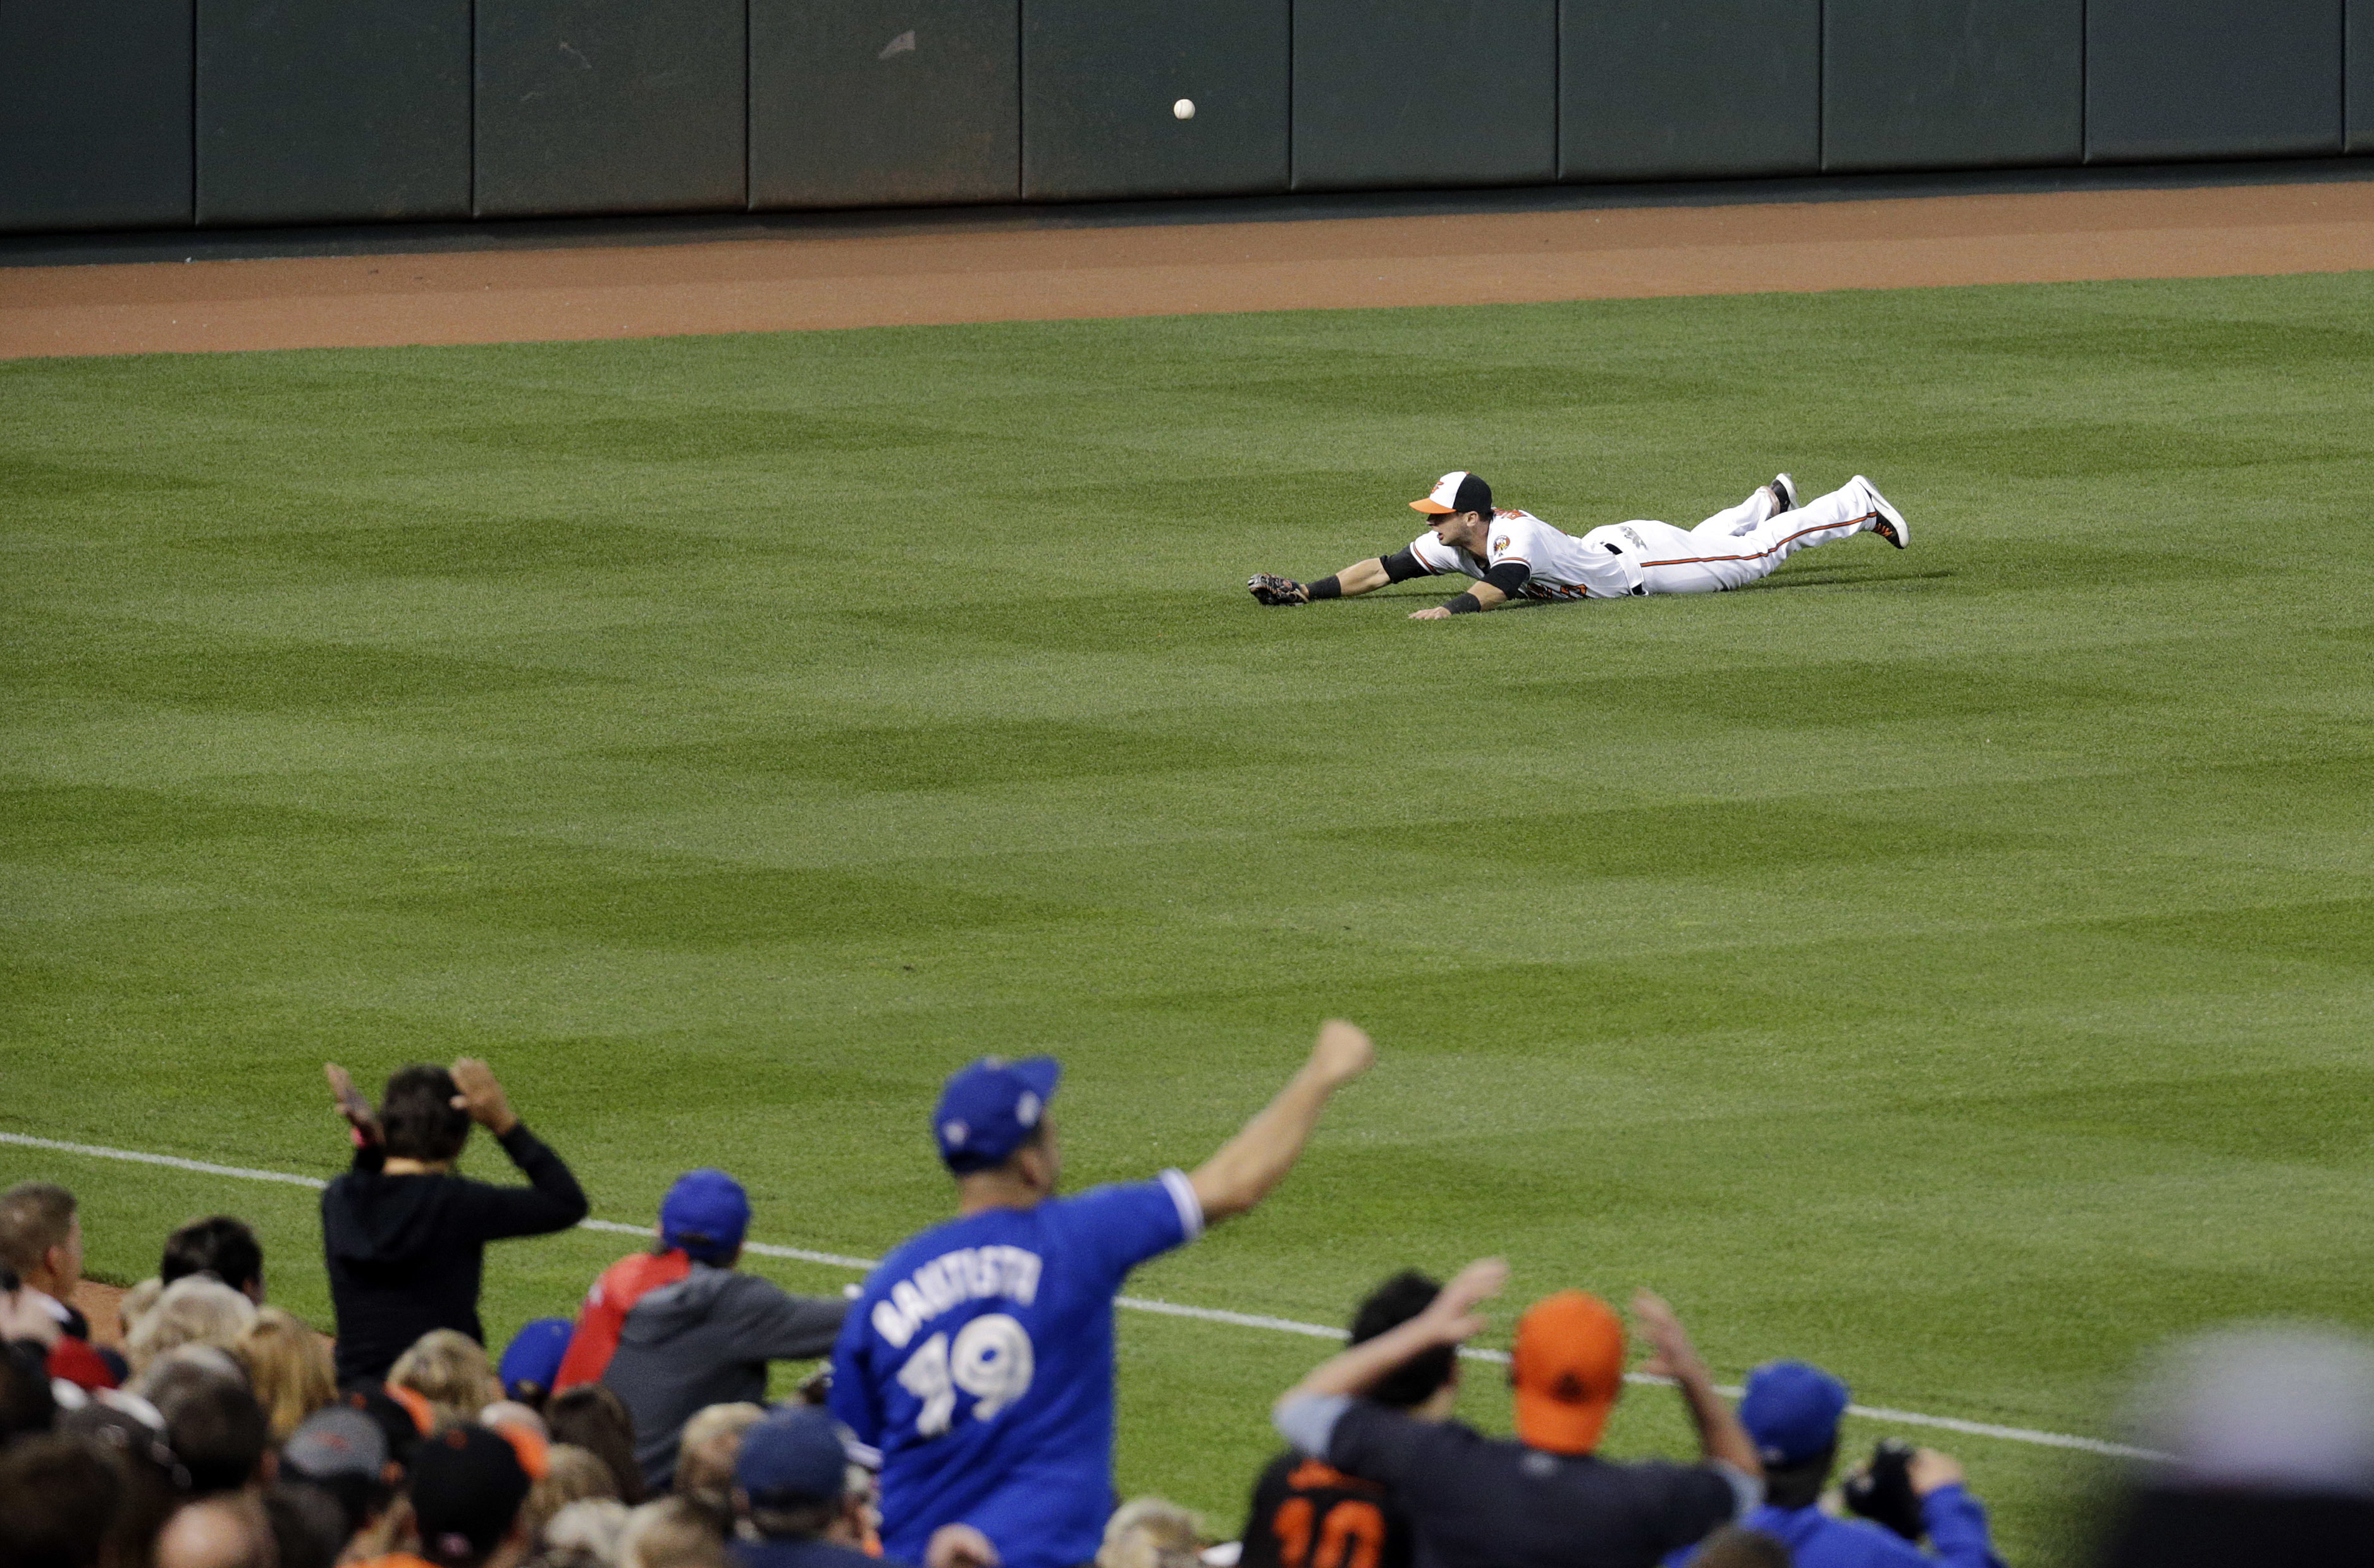 Fans react as a fly ball double by Toronto Blue Jays' Troy Tulowitzki gets past Baltimore Orioles left fielder Joey Rickard in the third inning of a baseball game in Baltimore, Tuesday, April 19, 2016. Michael Saunders and Jose Bautista scored on the play